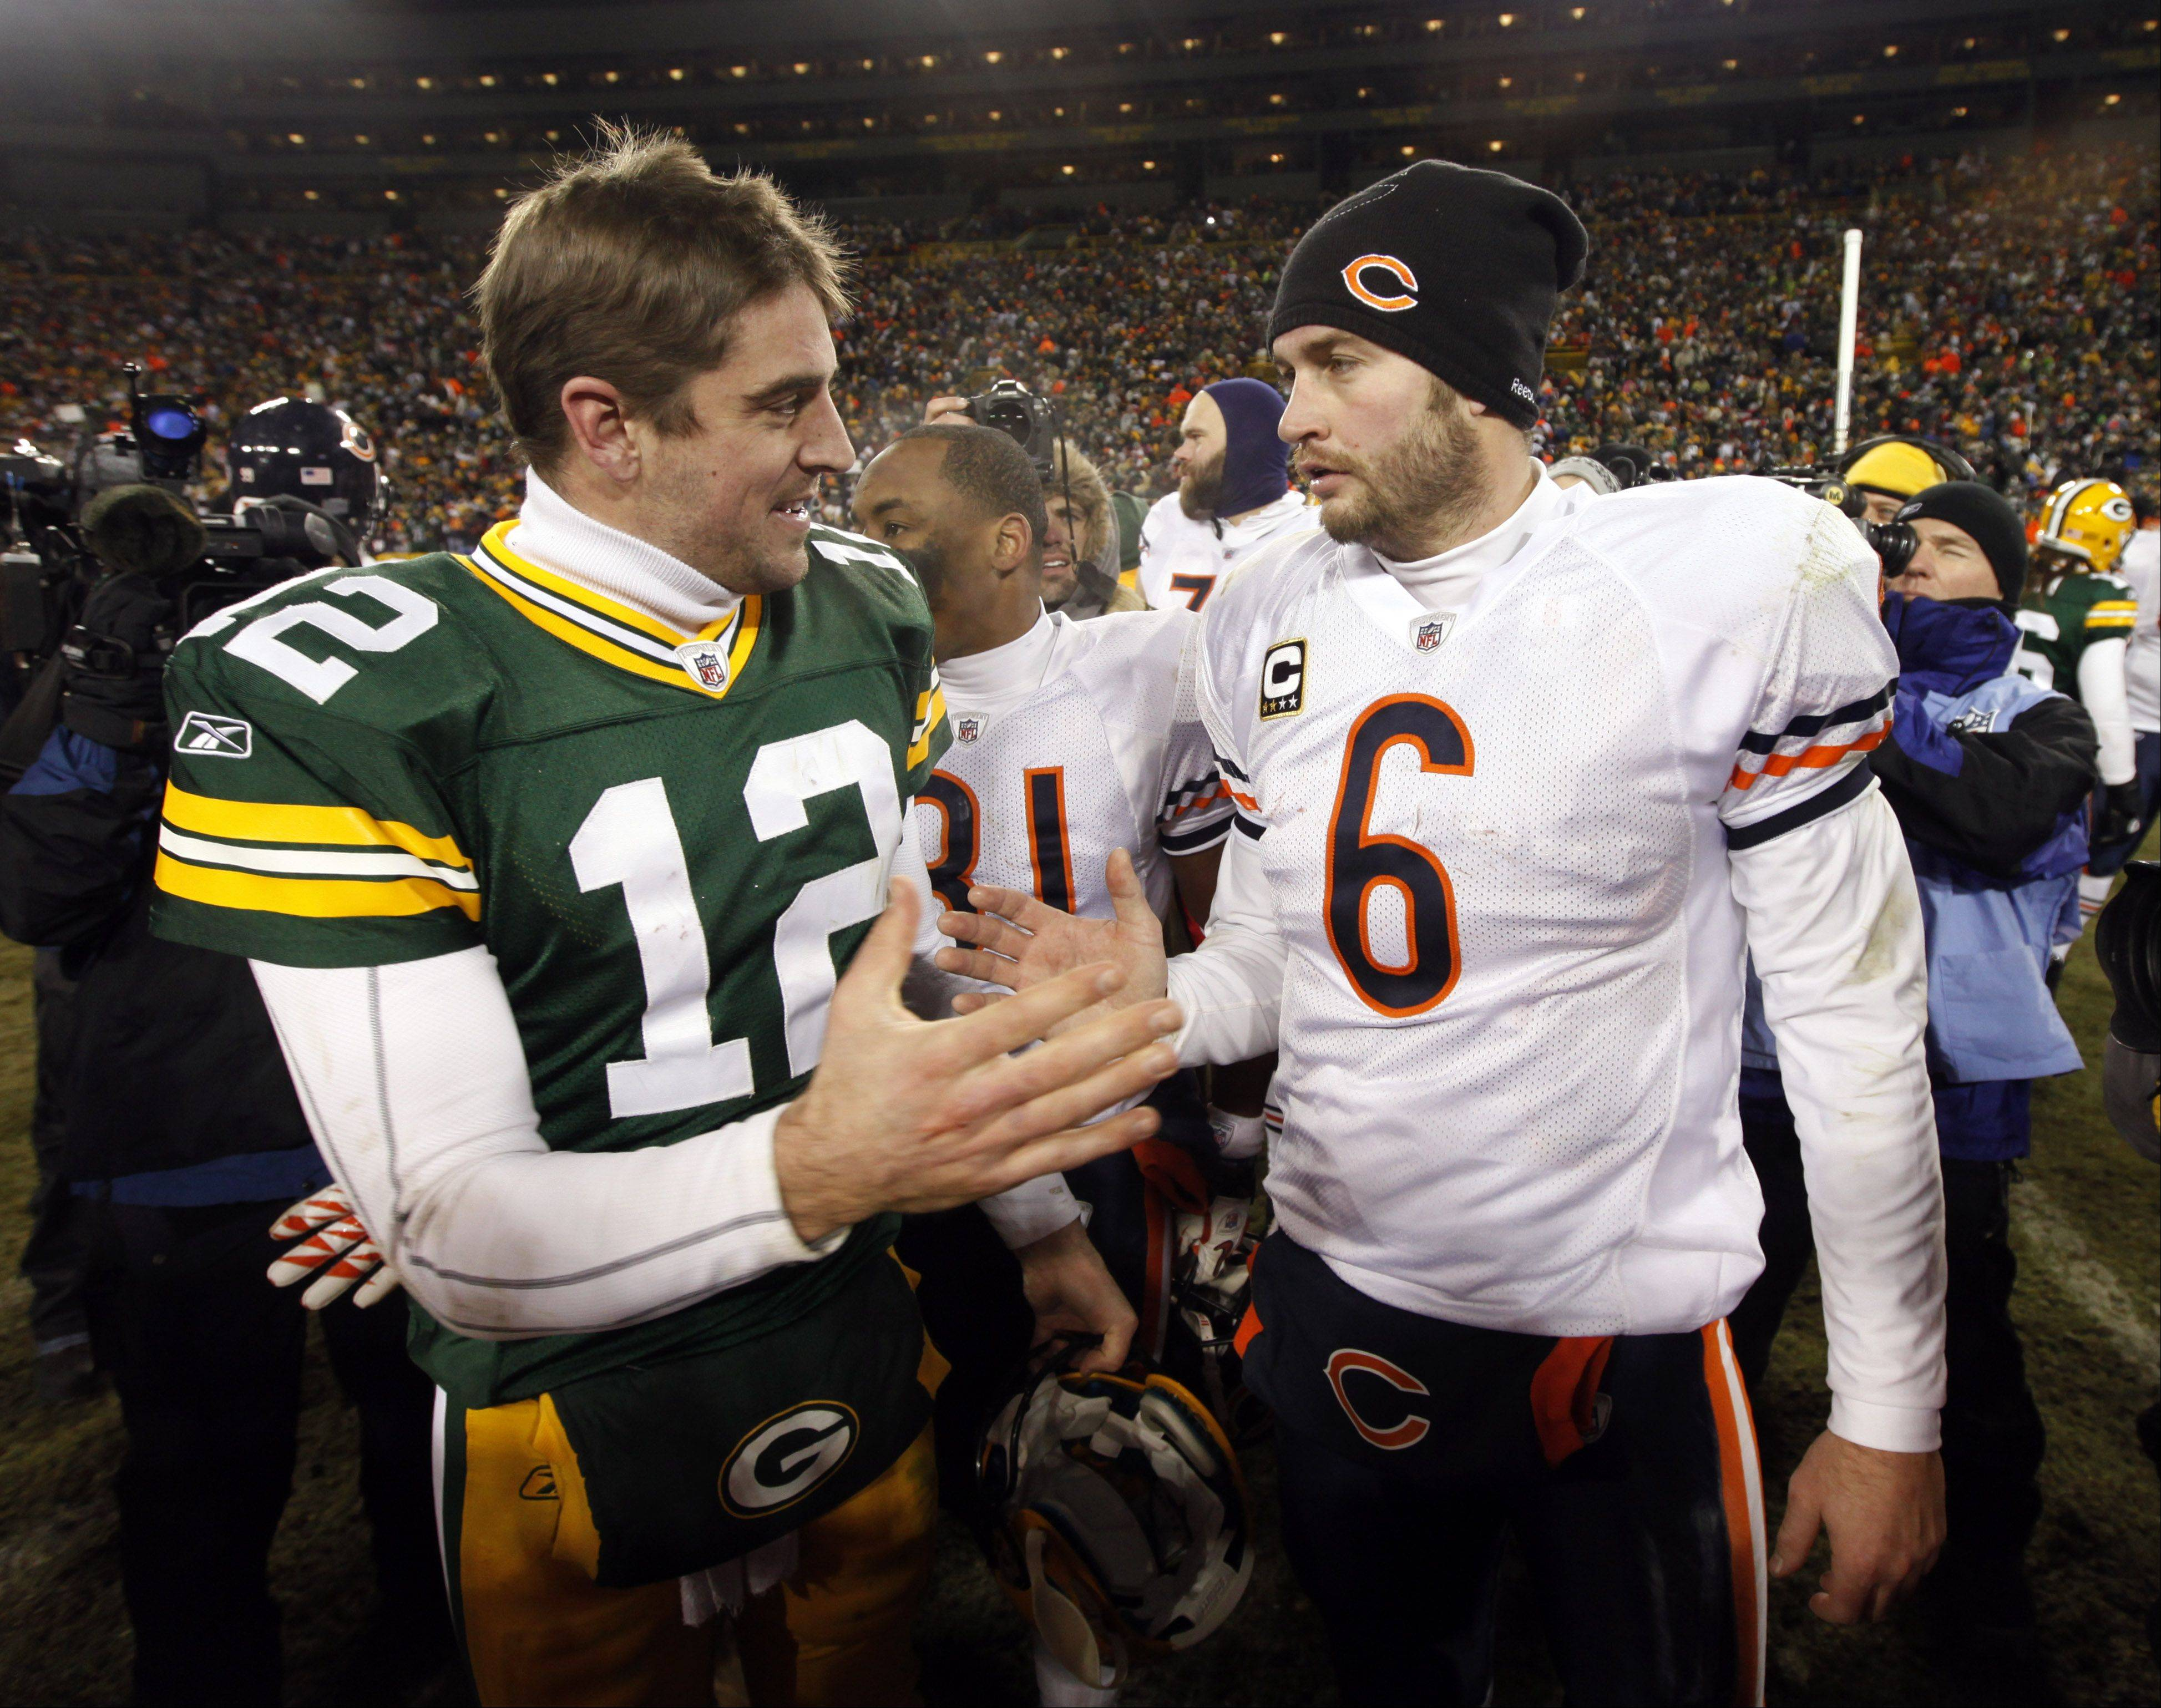 The quarterback who plays the best � the Packers� Aaron Rodgers or the Bears� Jay Cutler � will go a long way to determining the outcome of today�s showdown at Soldier Field.